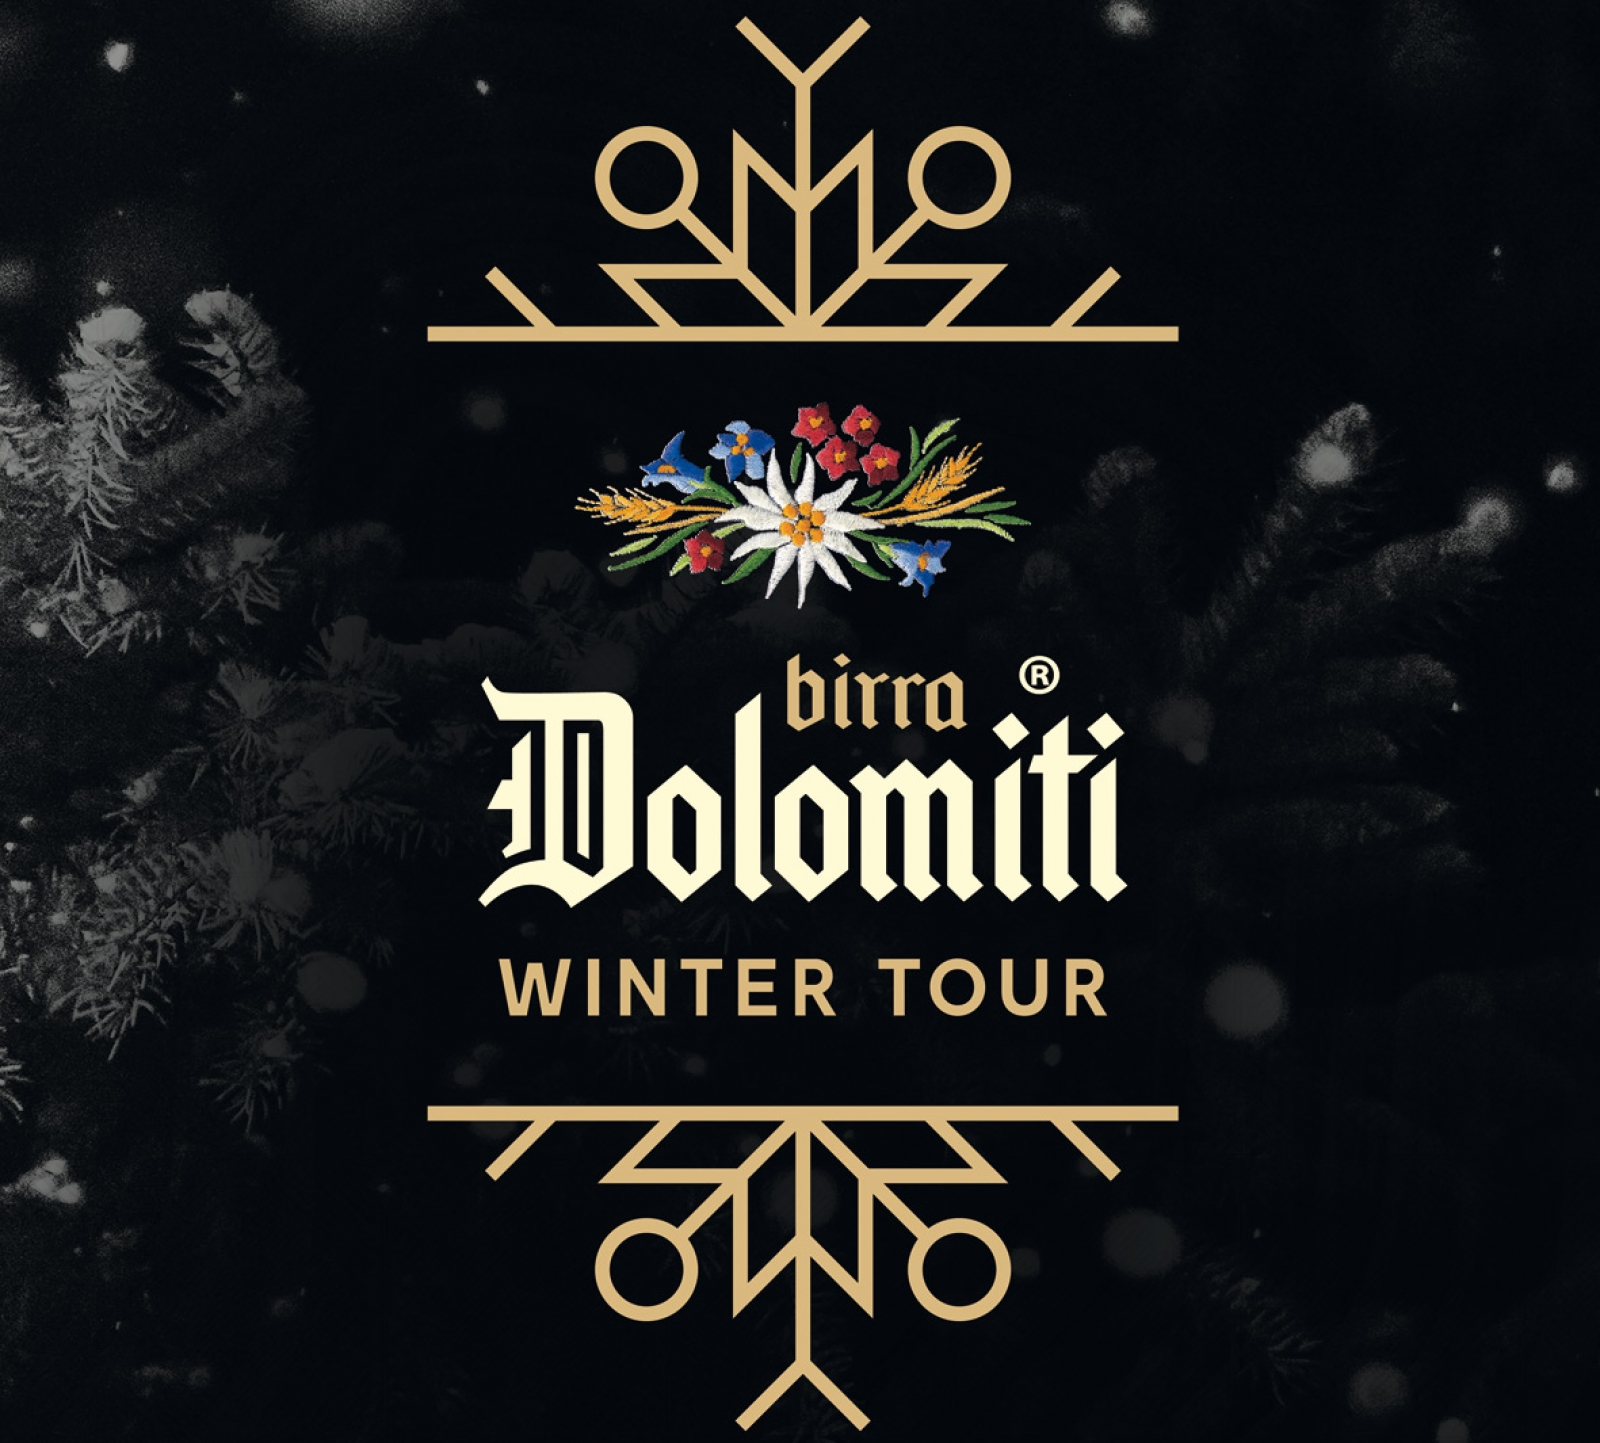 BIRRA DOLOMITI WINTER TOUR 2018